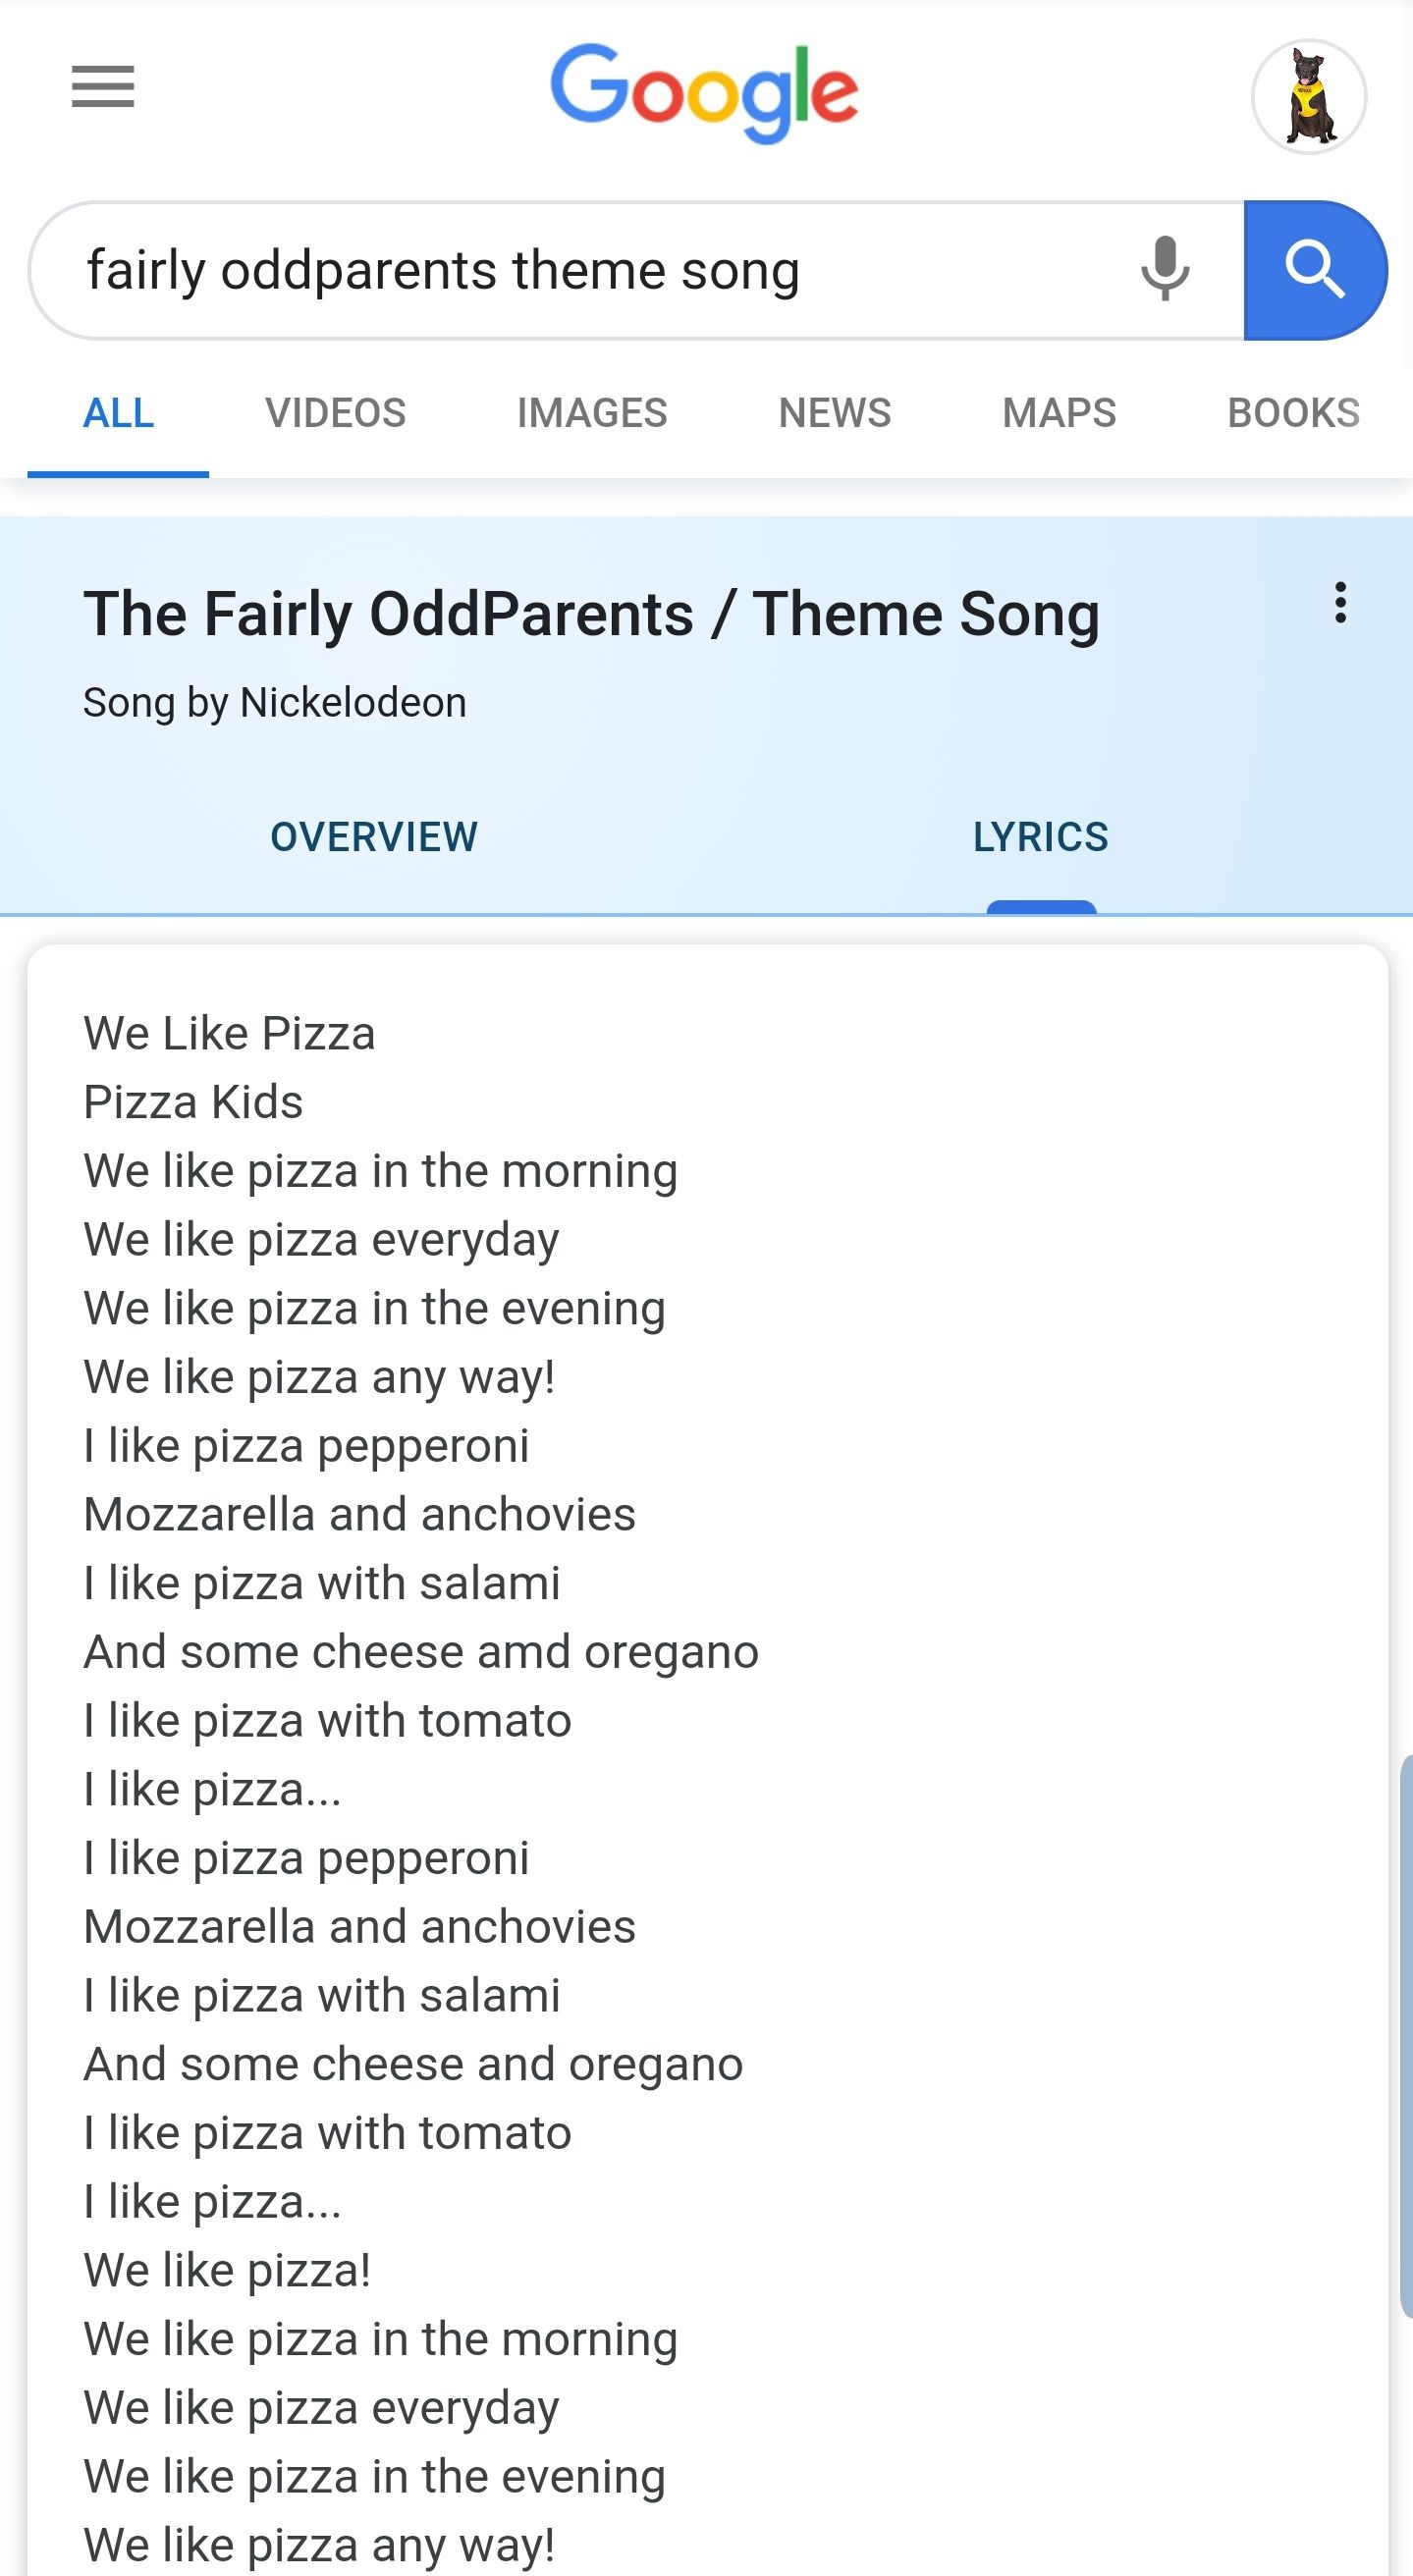 Nickelodeon Song Lyrics : nickelodeon, lyrics, Sounds, About, Right!, Fairly, Oddparents,, Songs,, Theme